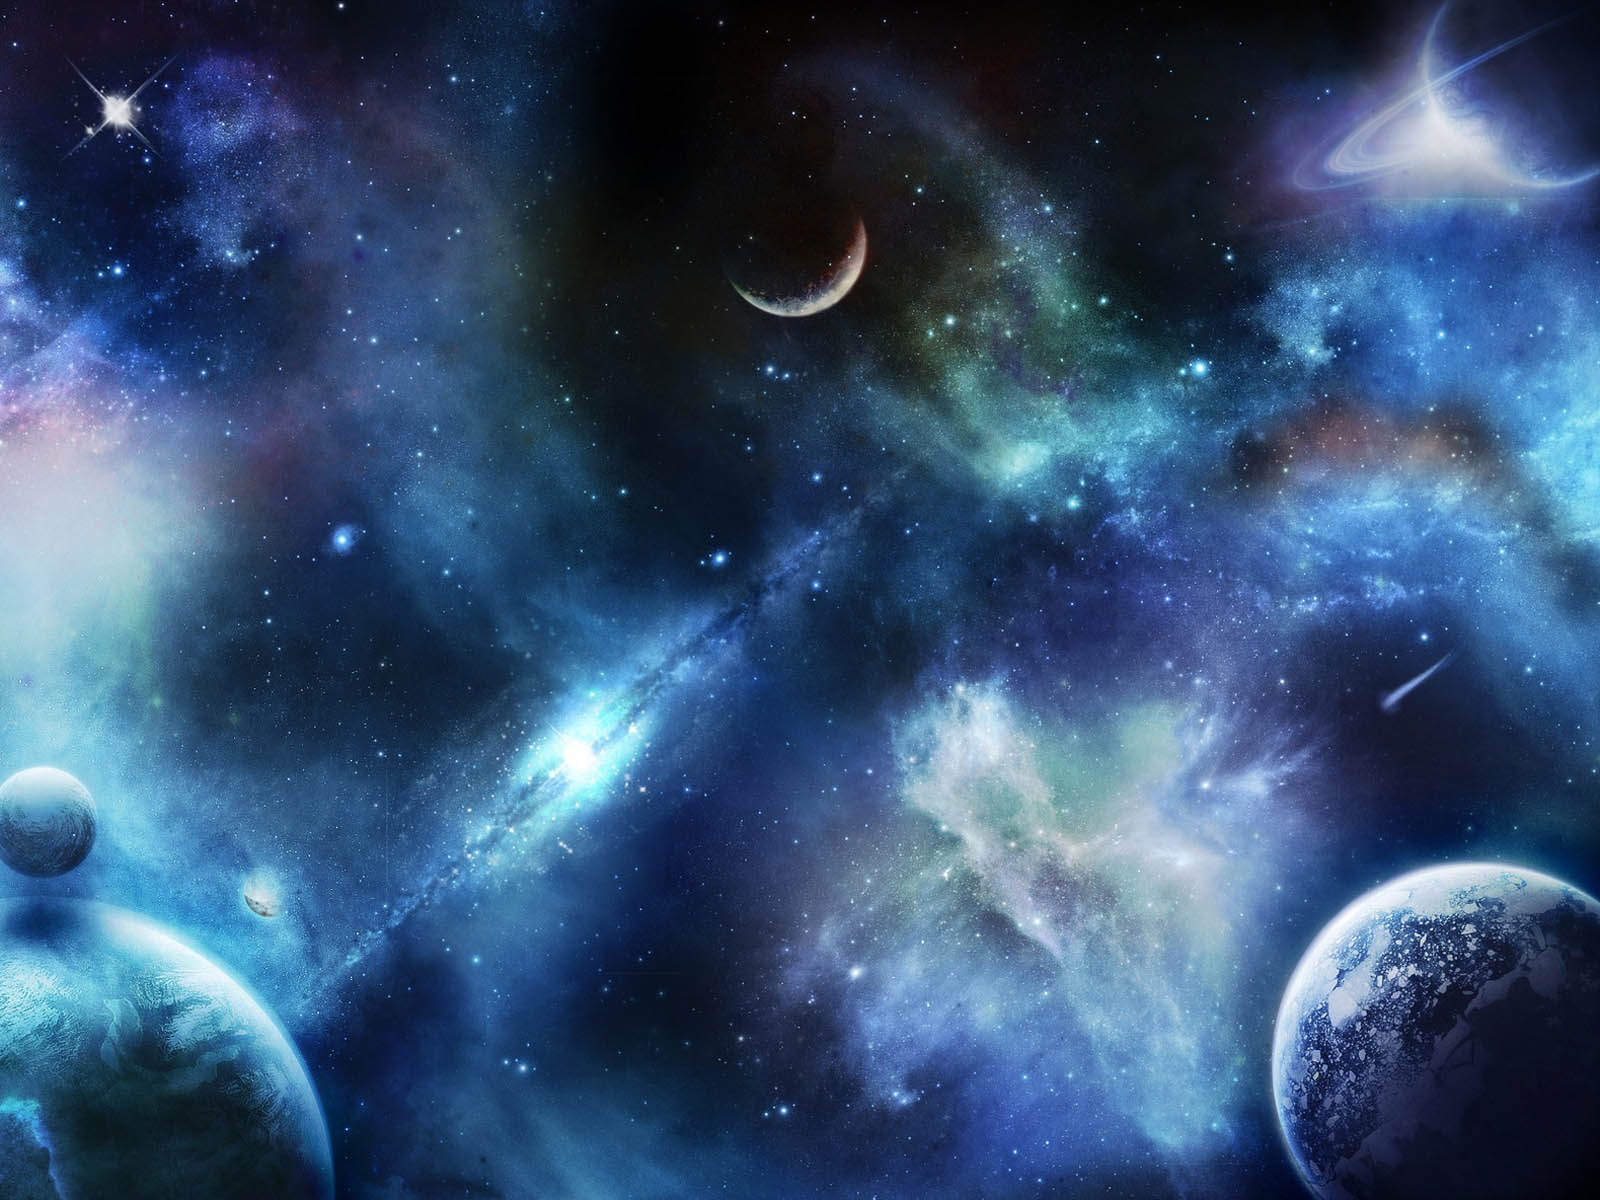 Tag: Outer Space Wallpapers, Images, Photos, Pictures and Backgrounds ...